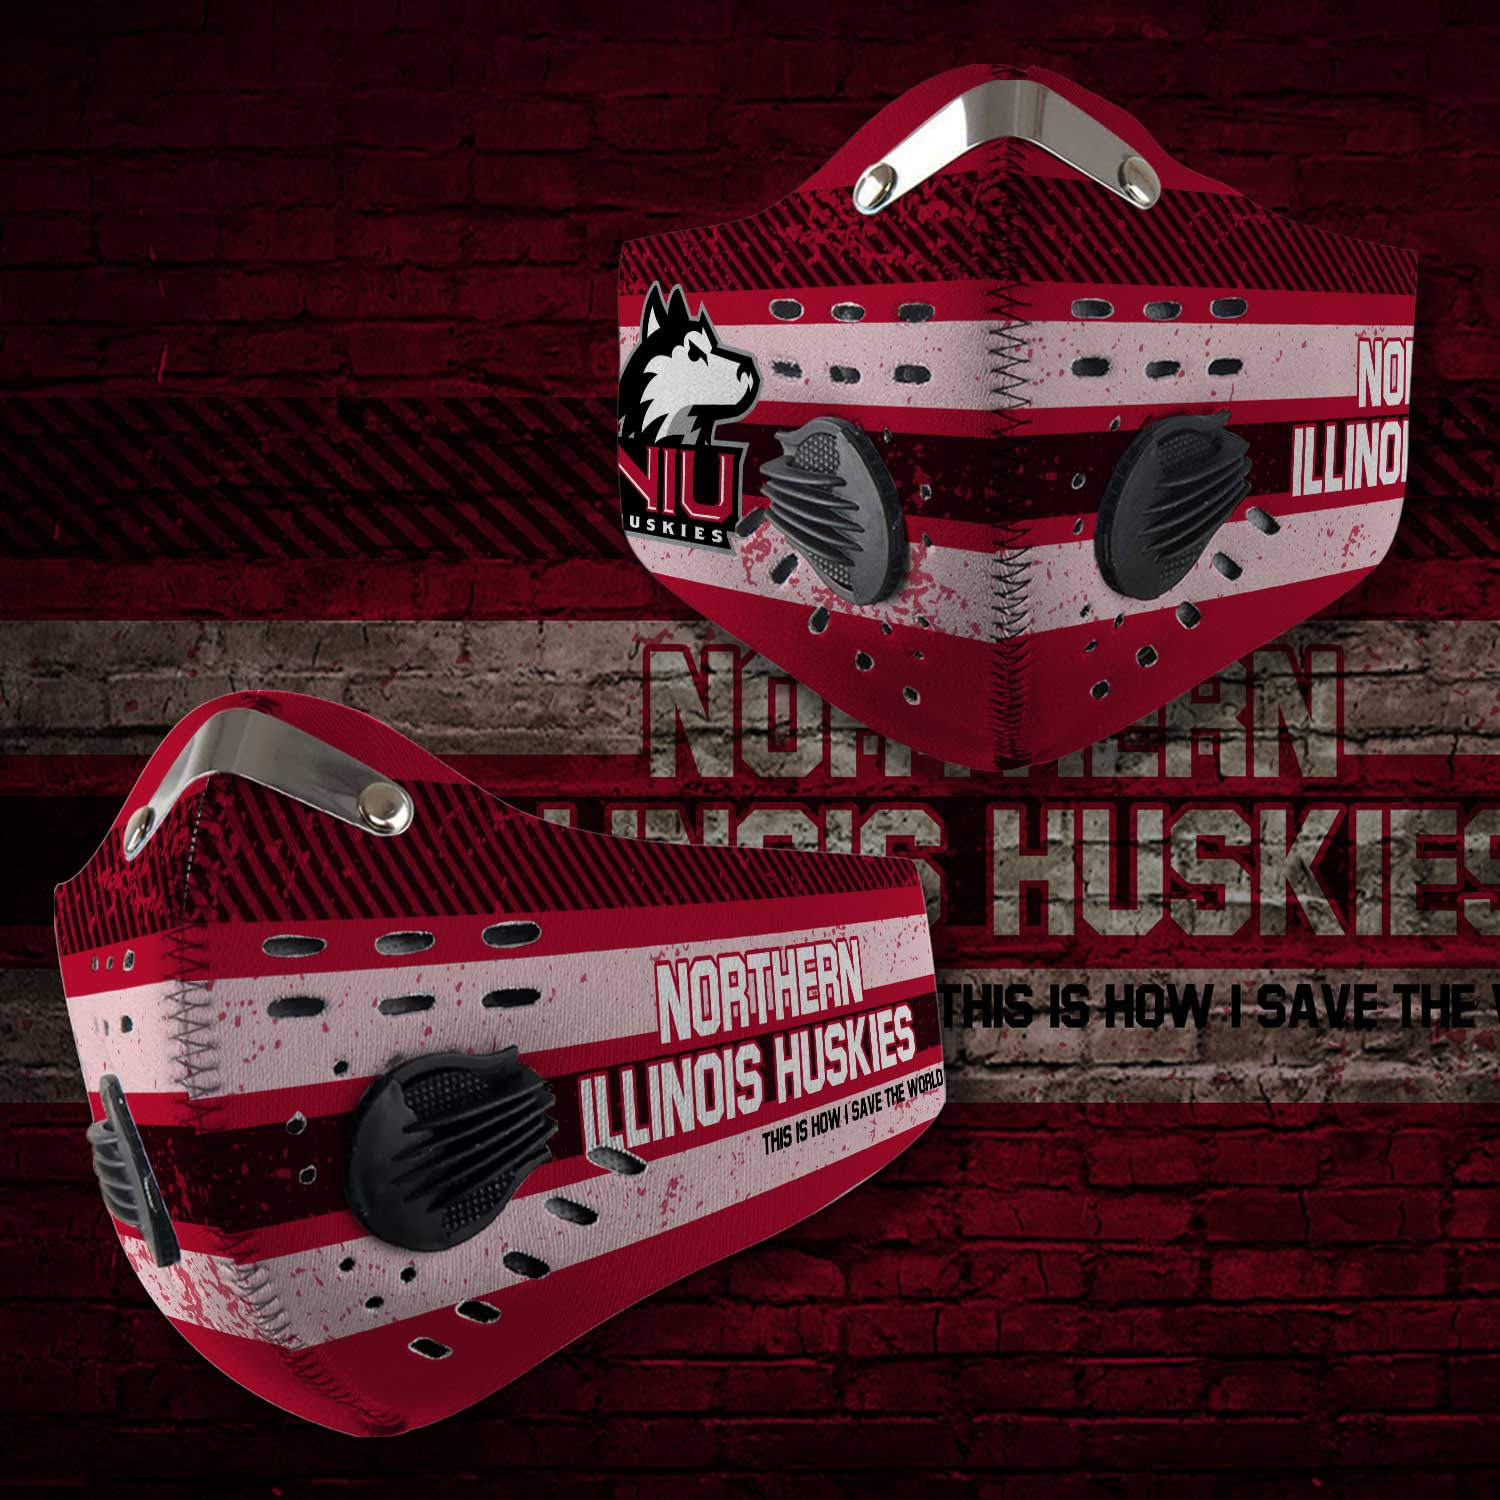 Northern illinois huskies this is how i save the world face mask 2